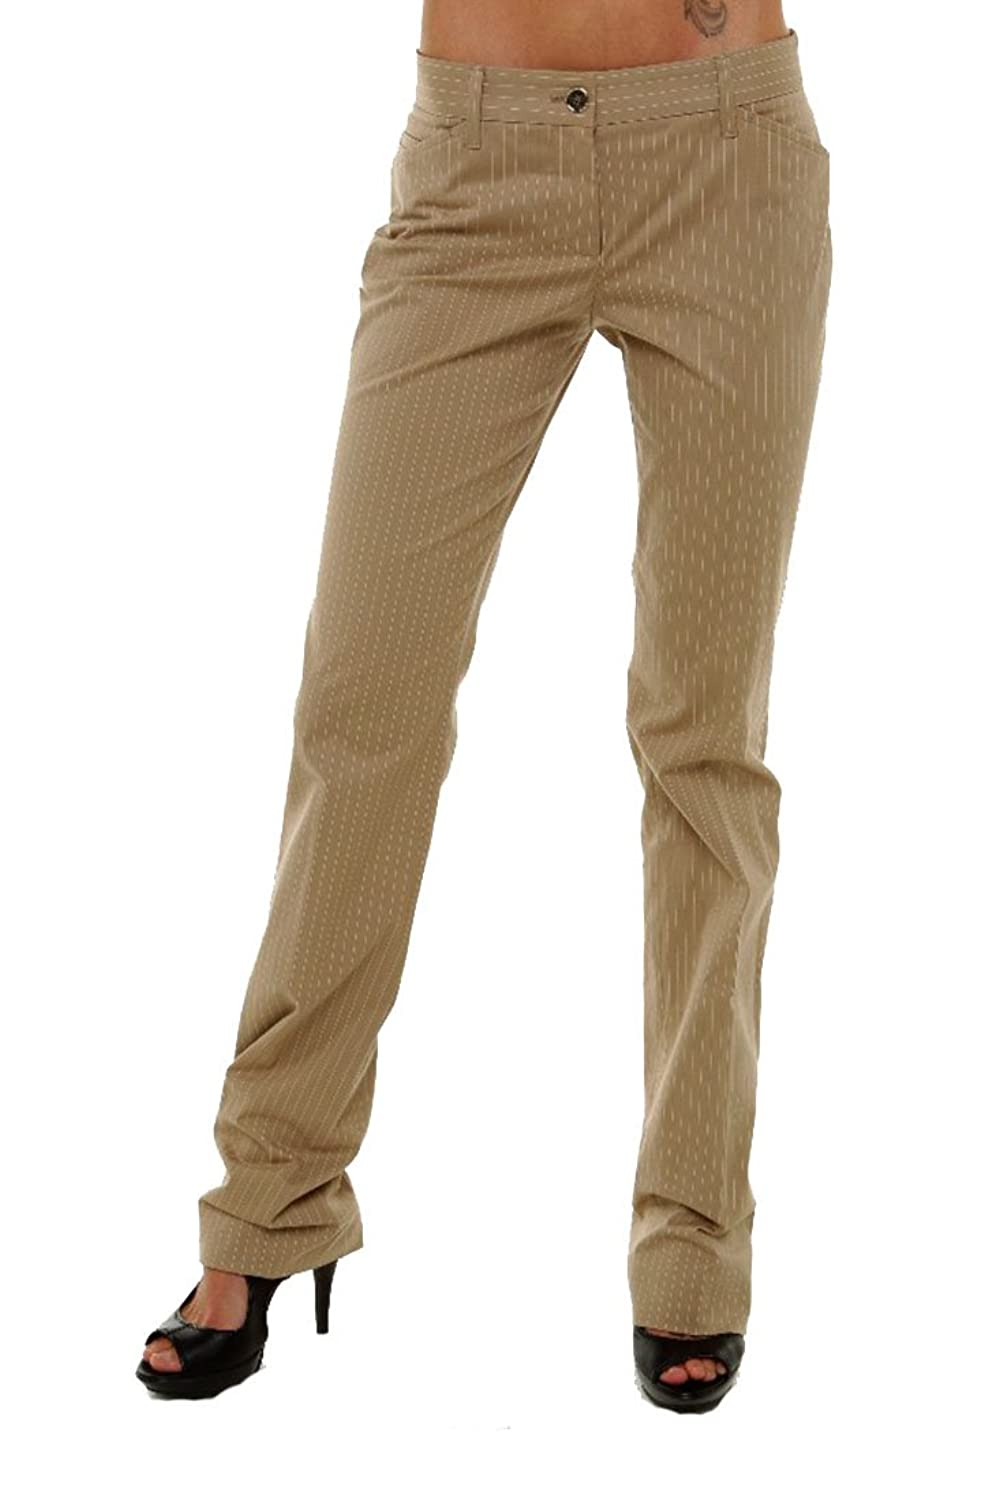 Dolce & Gabbana Womens Pants Trousers, 40, Beige